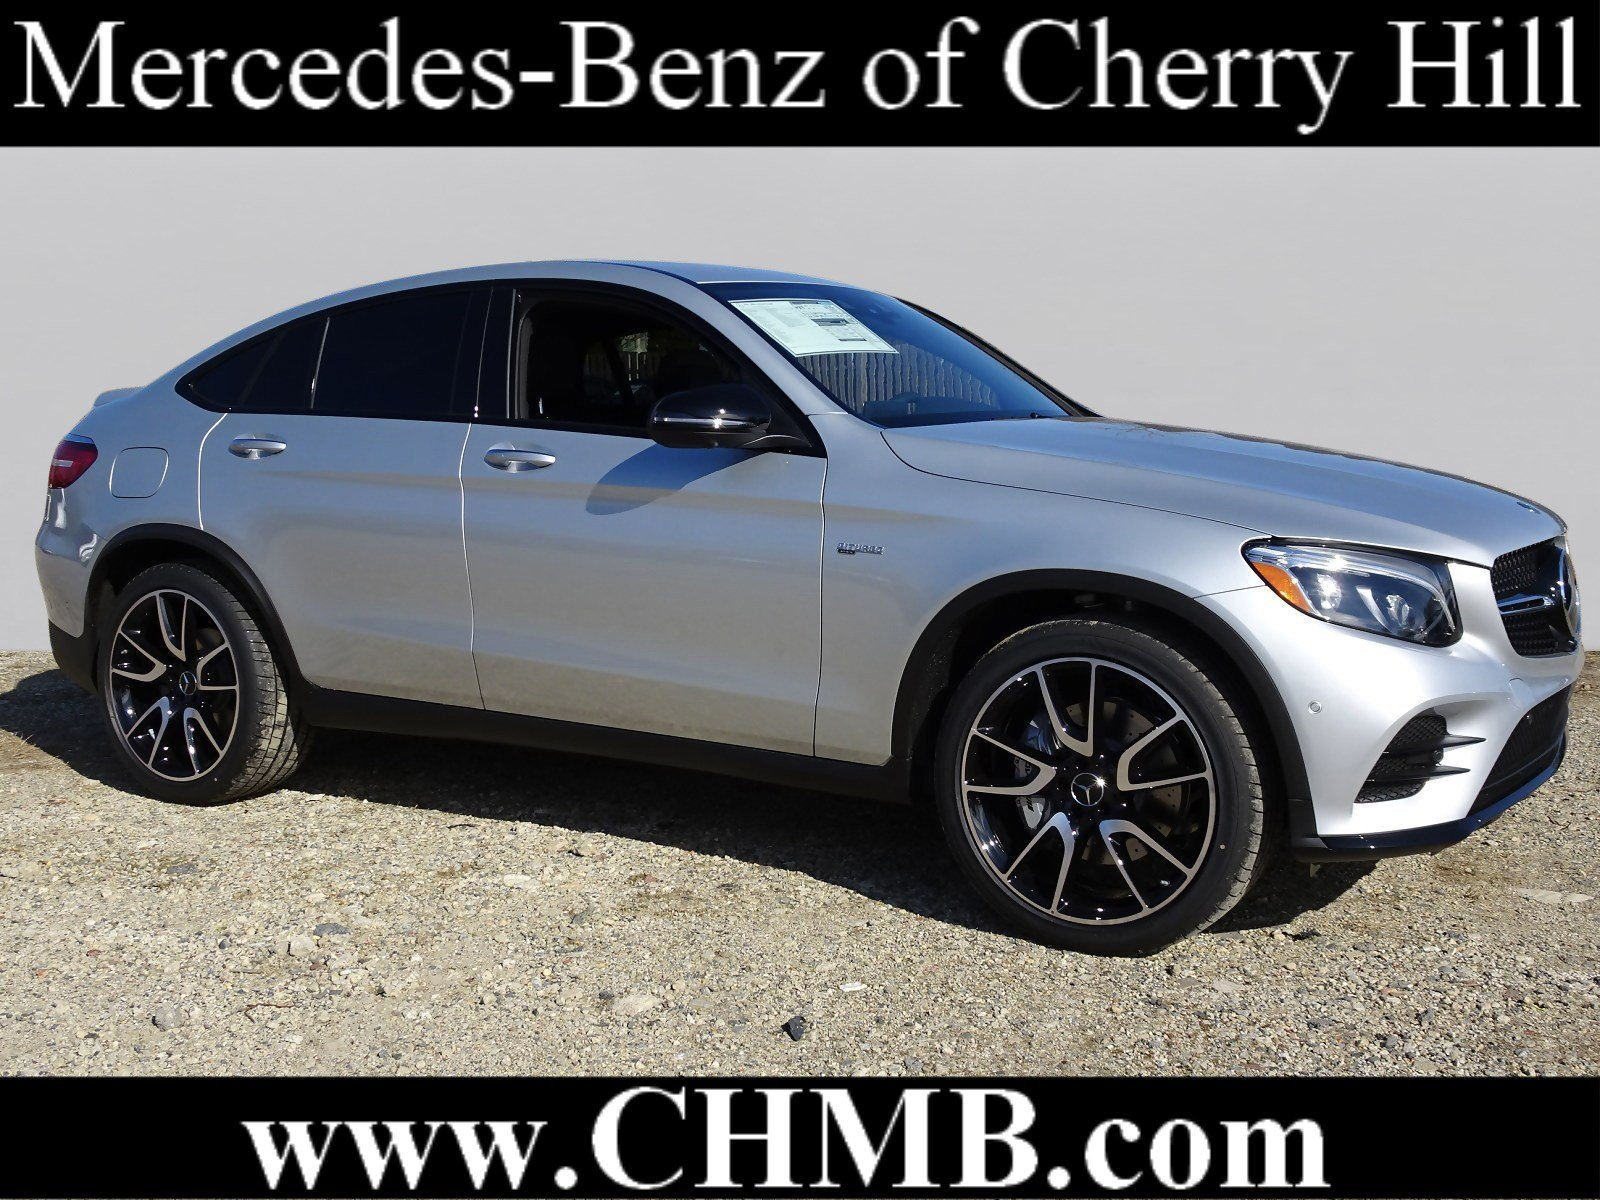 New 2019 Mercedes Benz GLC AMG GLC 43 4MATIC Coupe